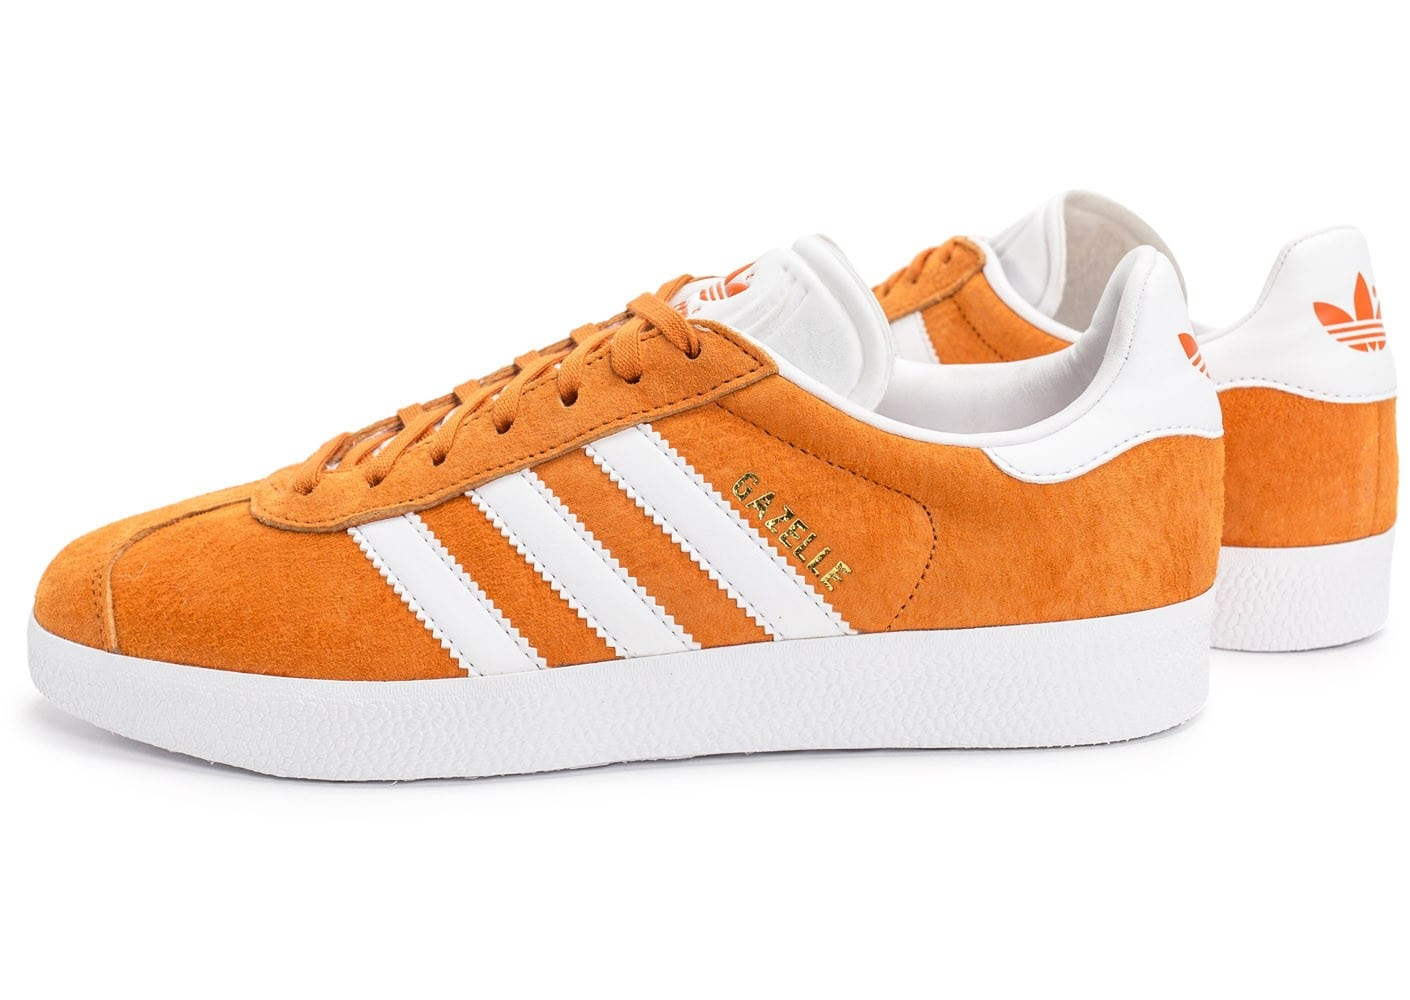 adidas Gazelle orange - Chaussures Baskets homme - Chausport